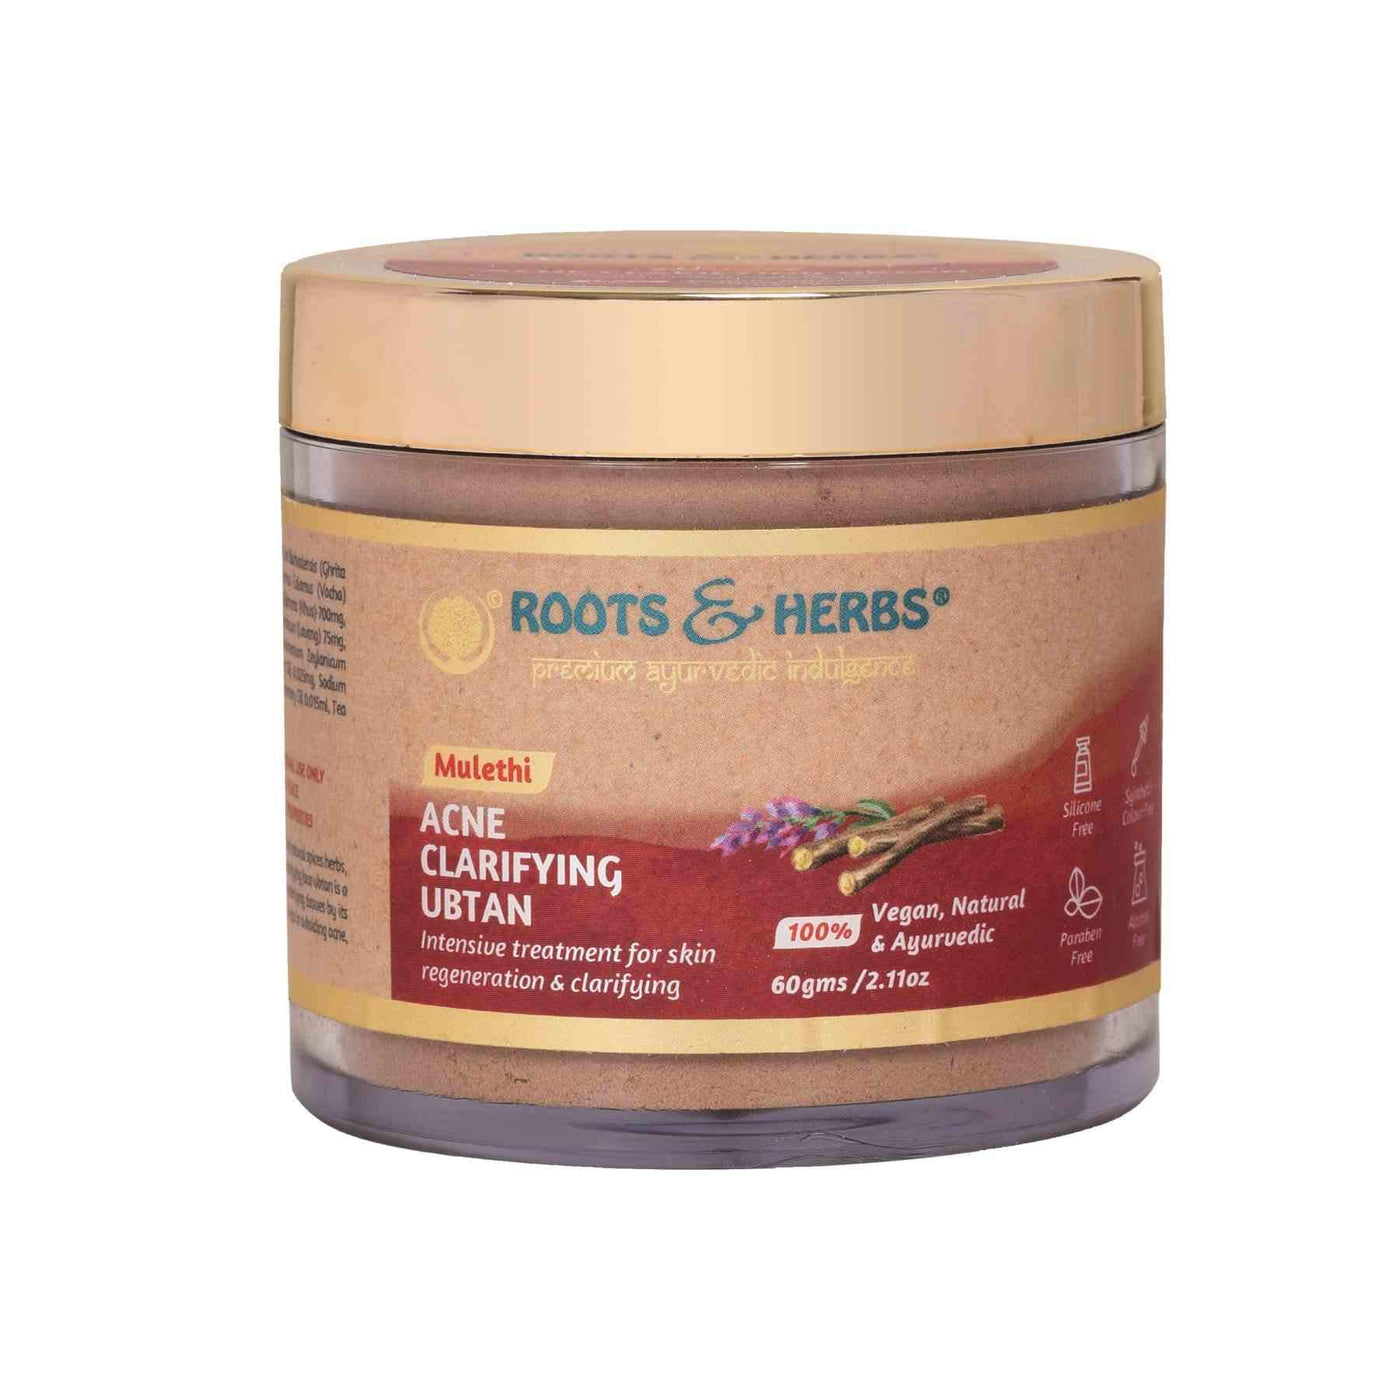 This image is of Roots & Herbs Mulethi Acne Clarifying Ubtan